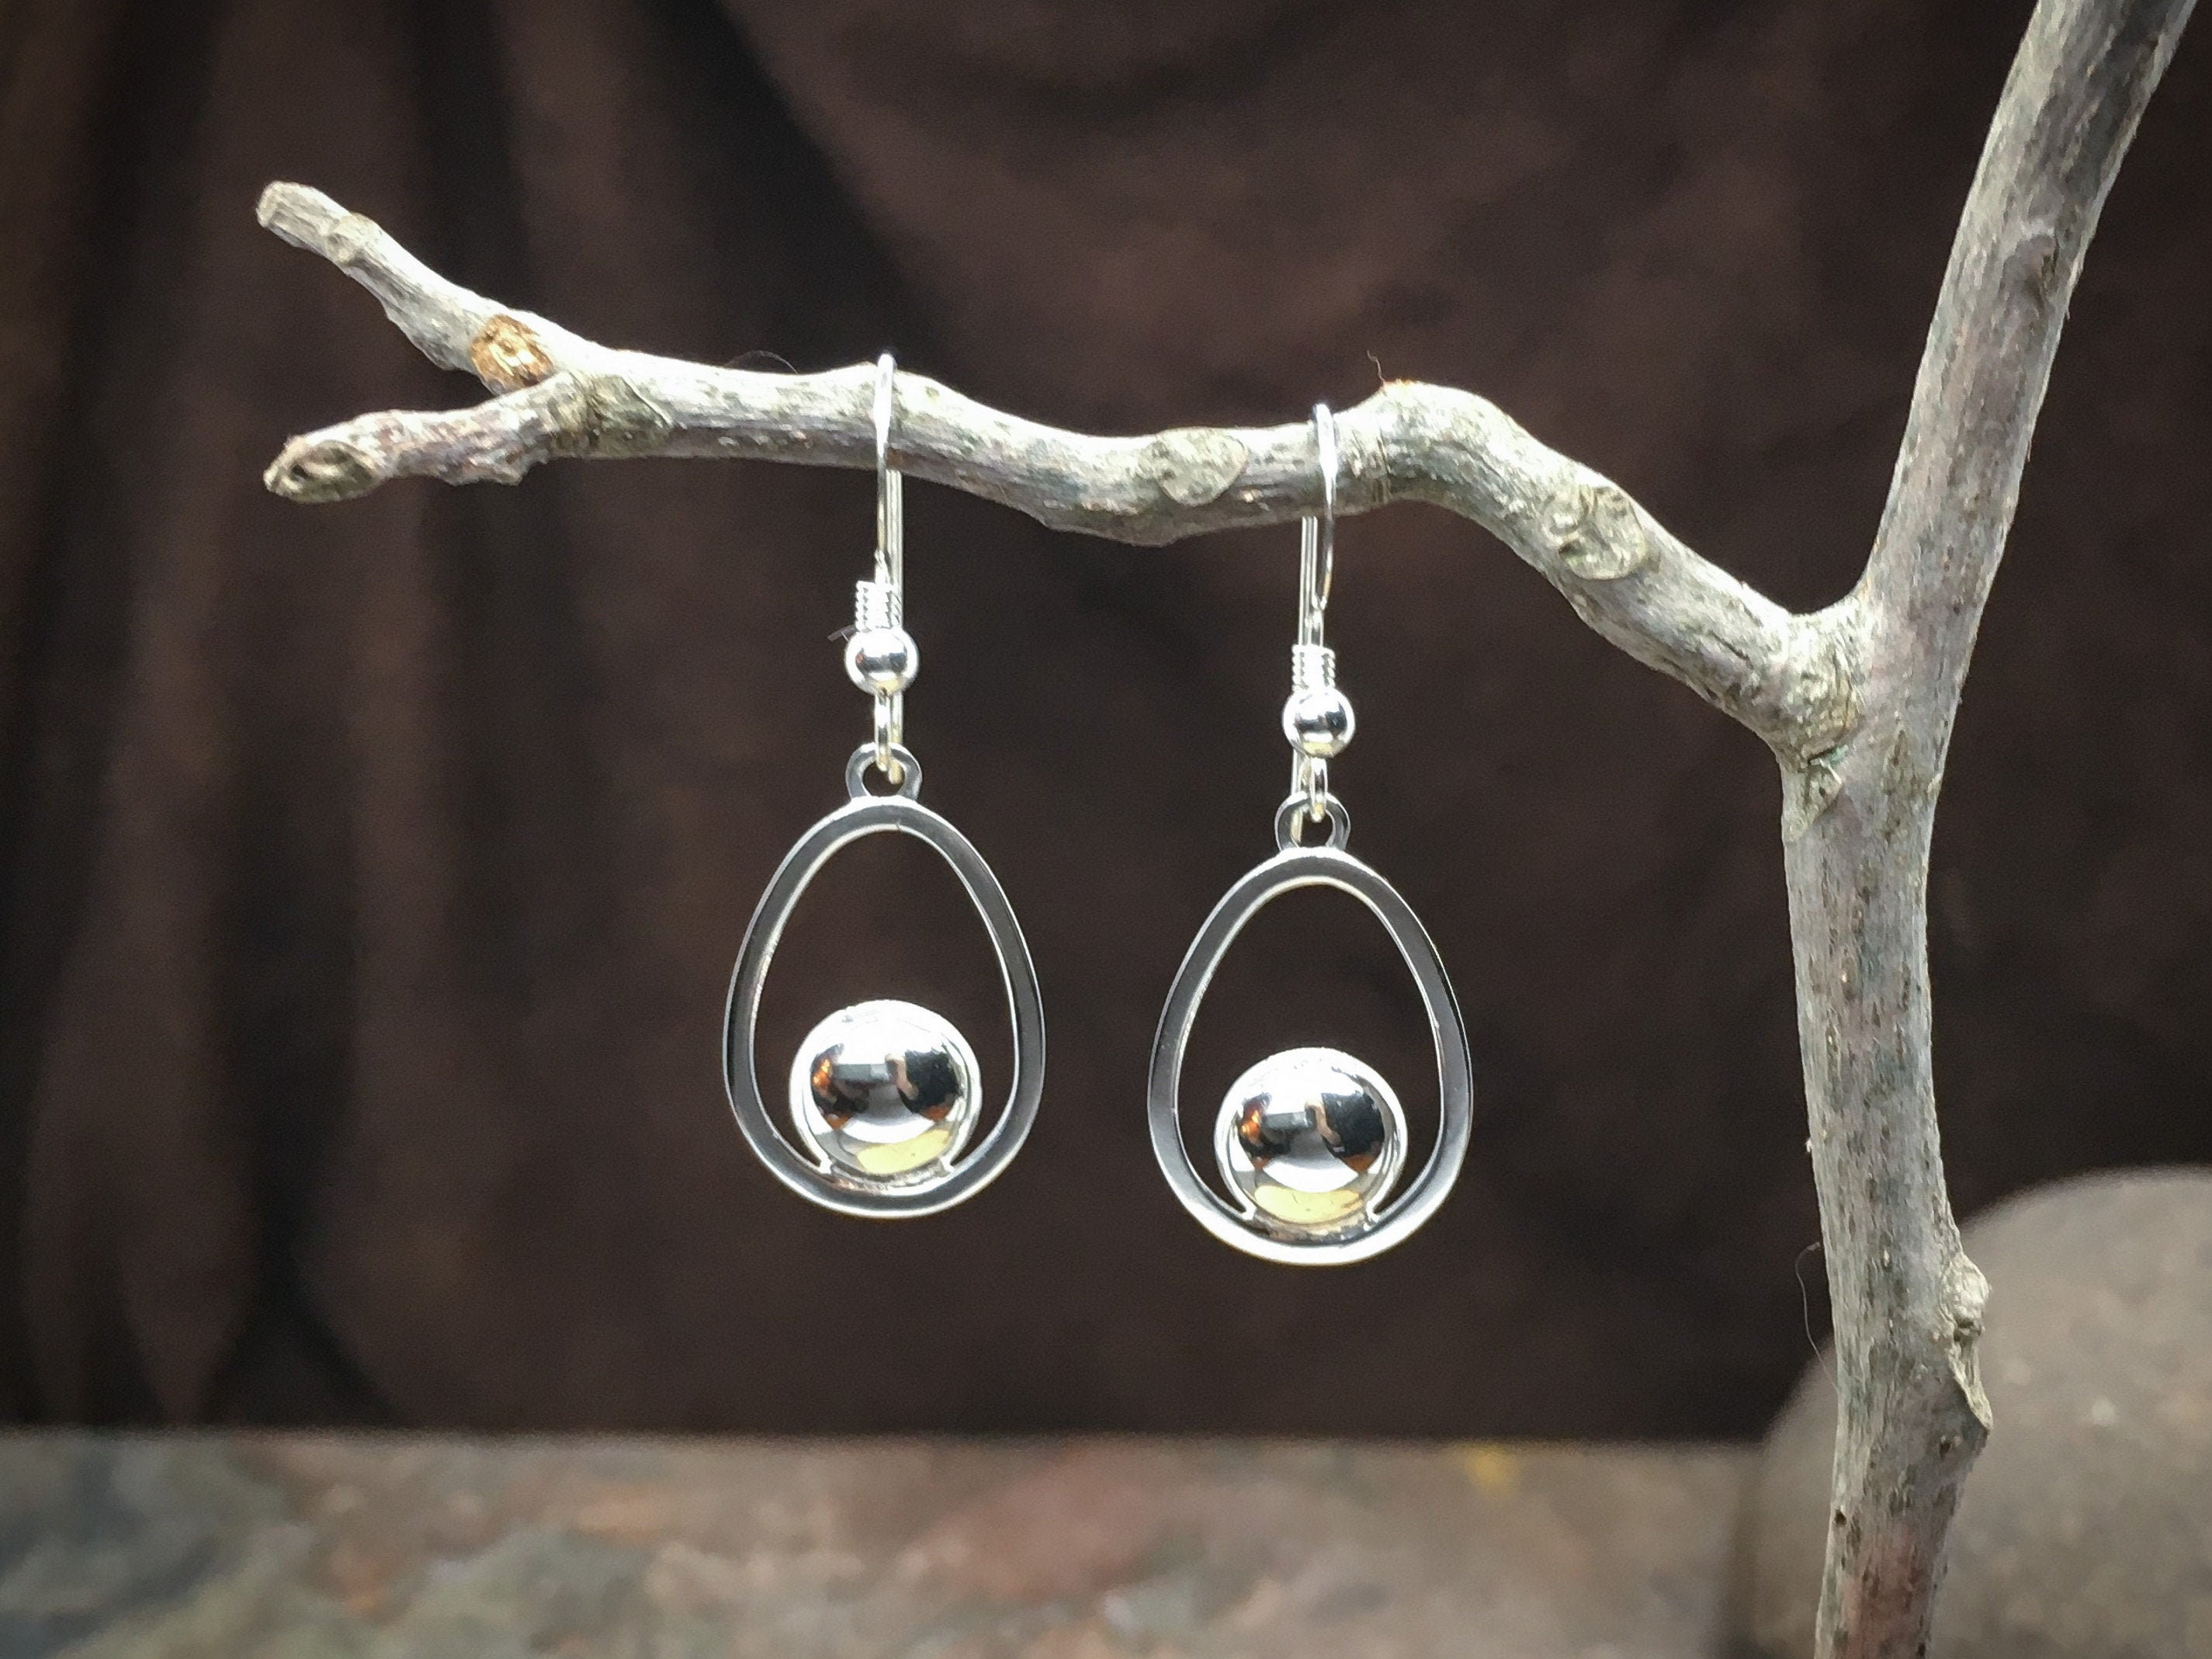 EGG Earrings in solid Sterling Silver - High end earrings for anniversary gift, birthday gift, gift for wife, farmer gift or chicken gift!